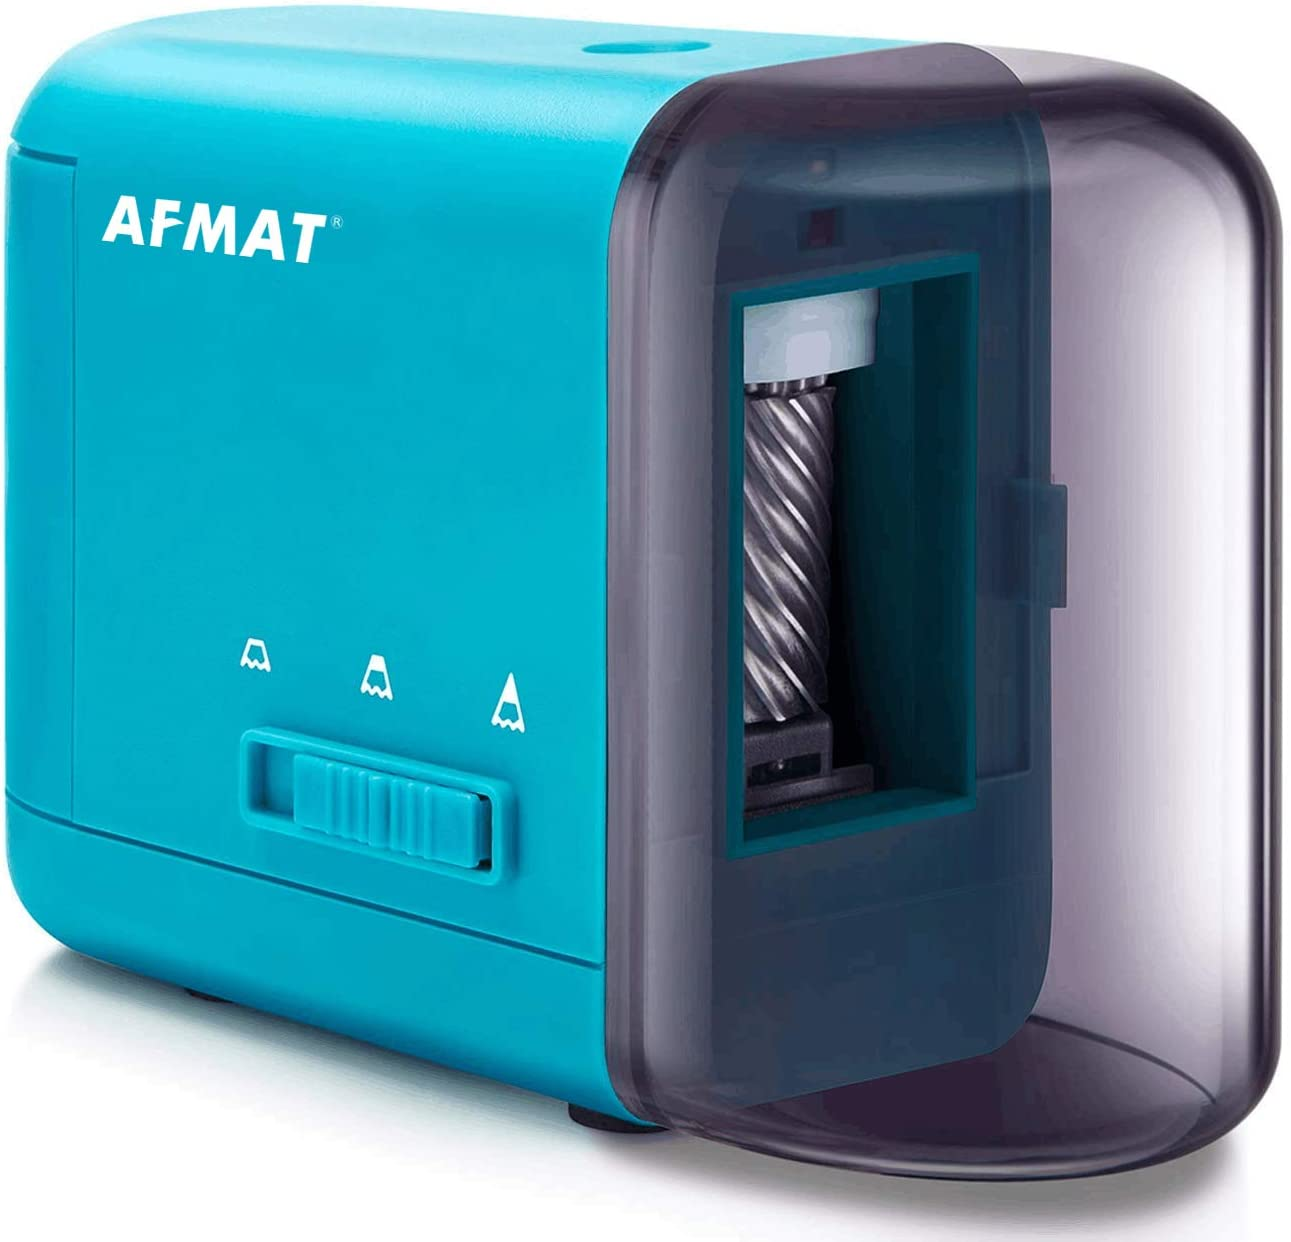 AFMAT Colored Pencil Sharpener, Electric Pencil Sharpener for Colored Pencils(6-8mm), Fast Sharpen, 3 Settings, Portable Pencil Sharpener for Kids, AC/USB/AA Battery Operated with Adapter